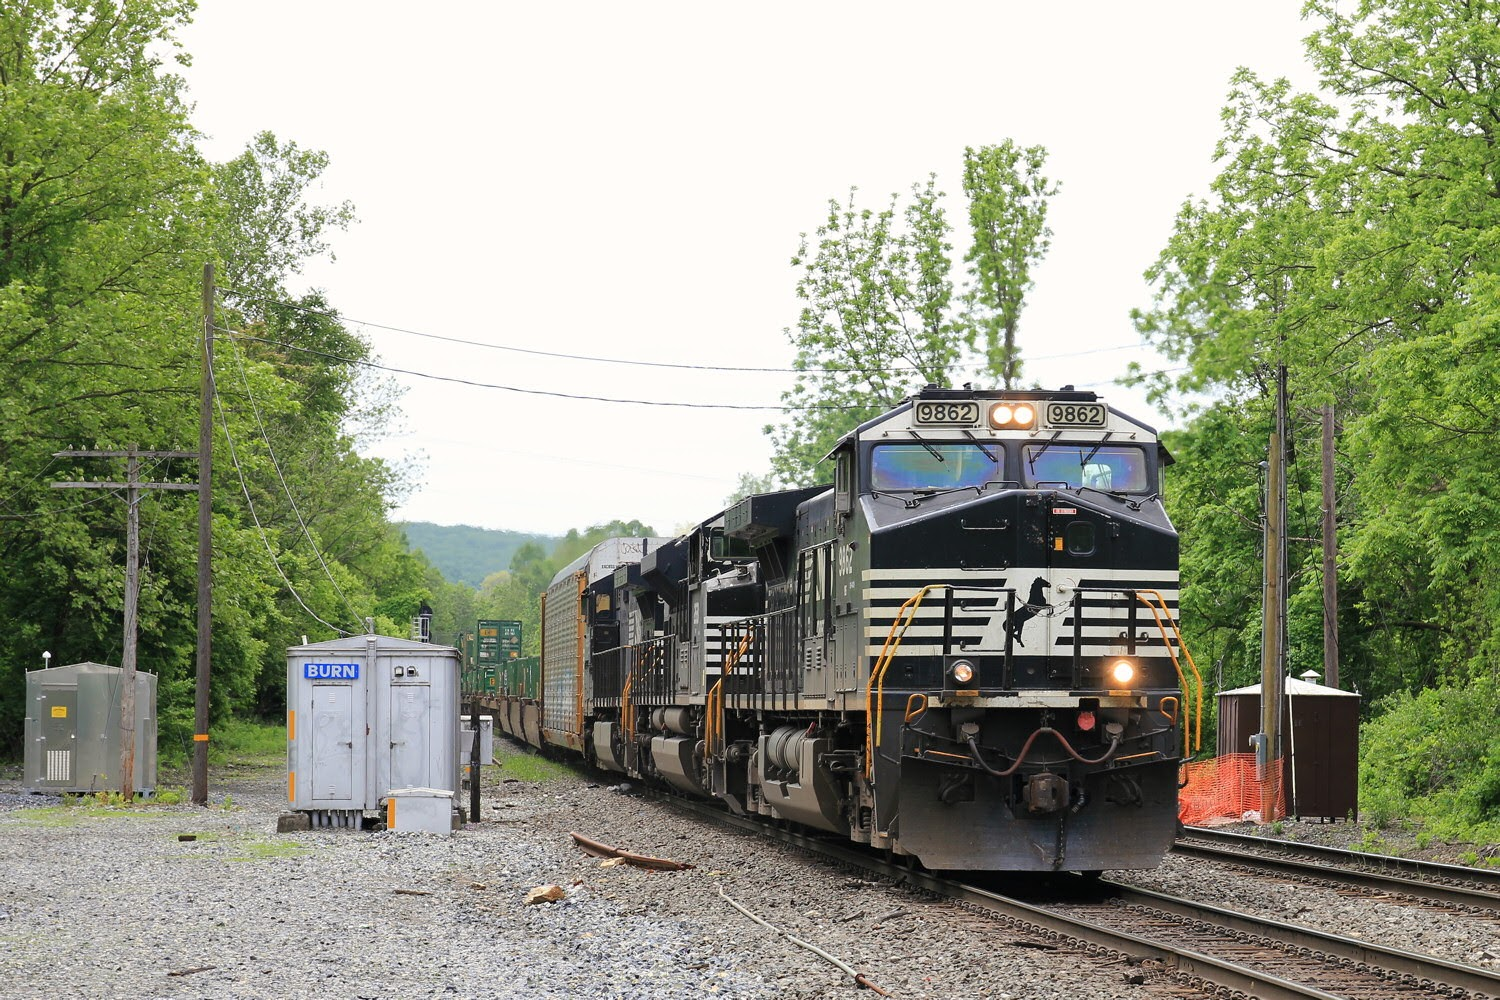 Jersey Mike's Rail Adventures: 17-05-21 PHOTOS: Reading Line East